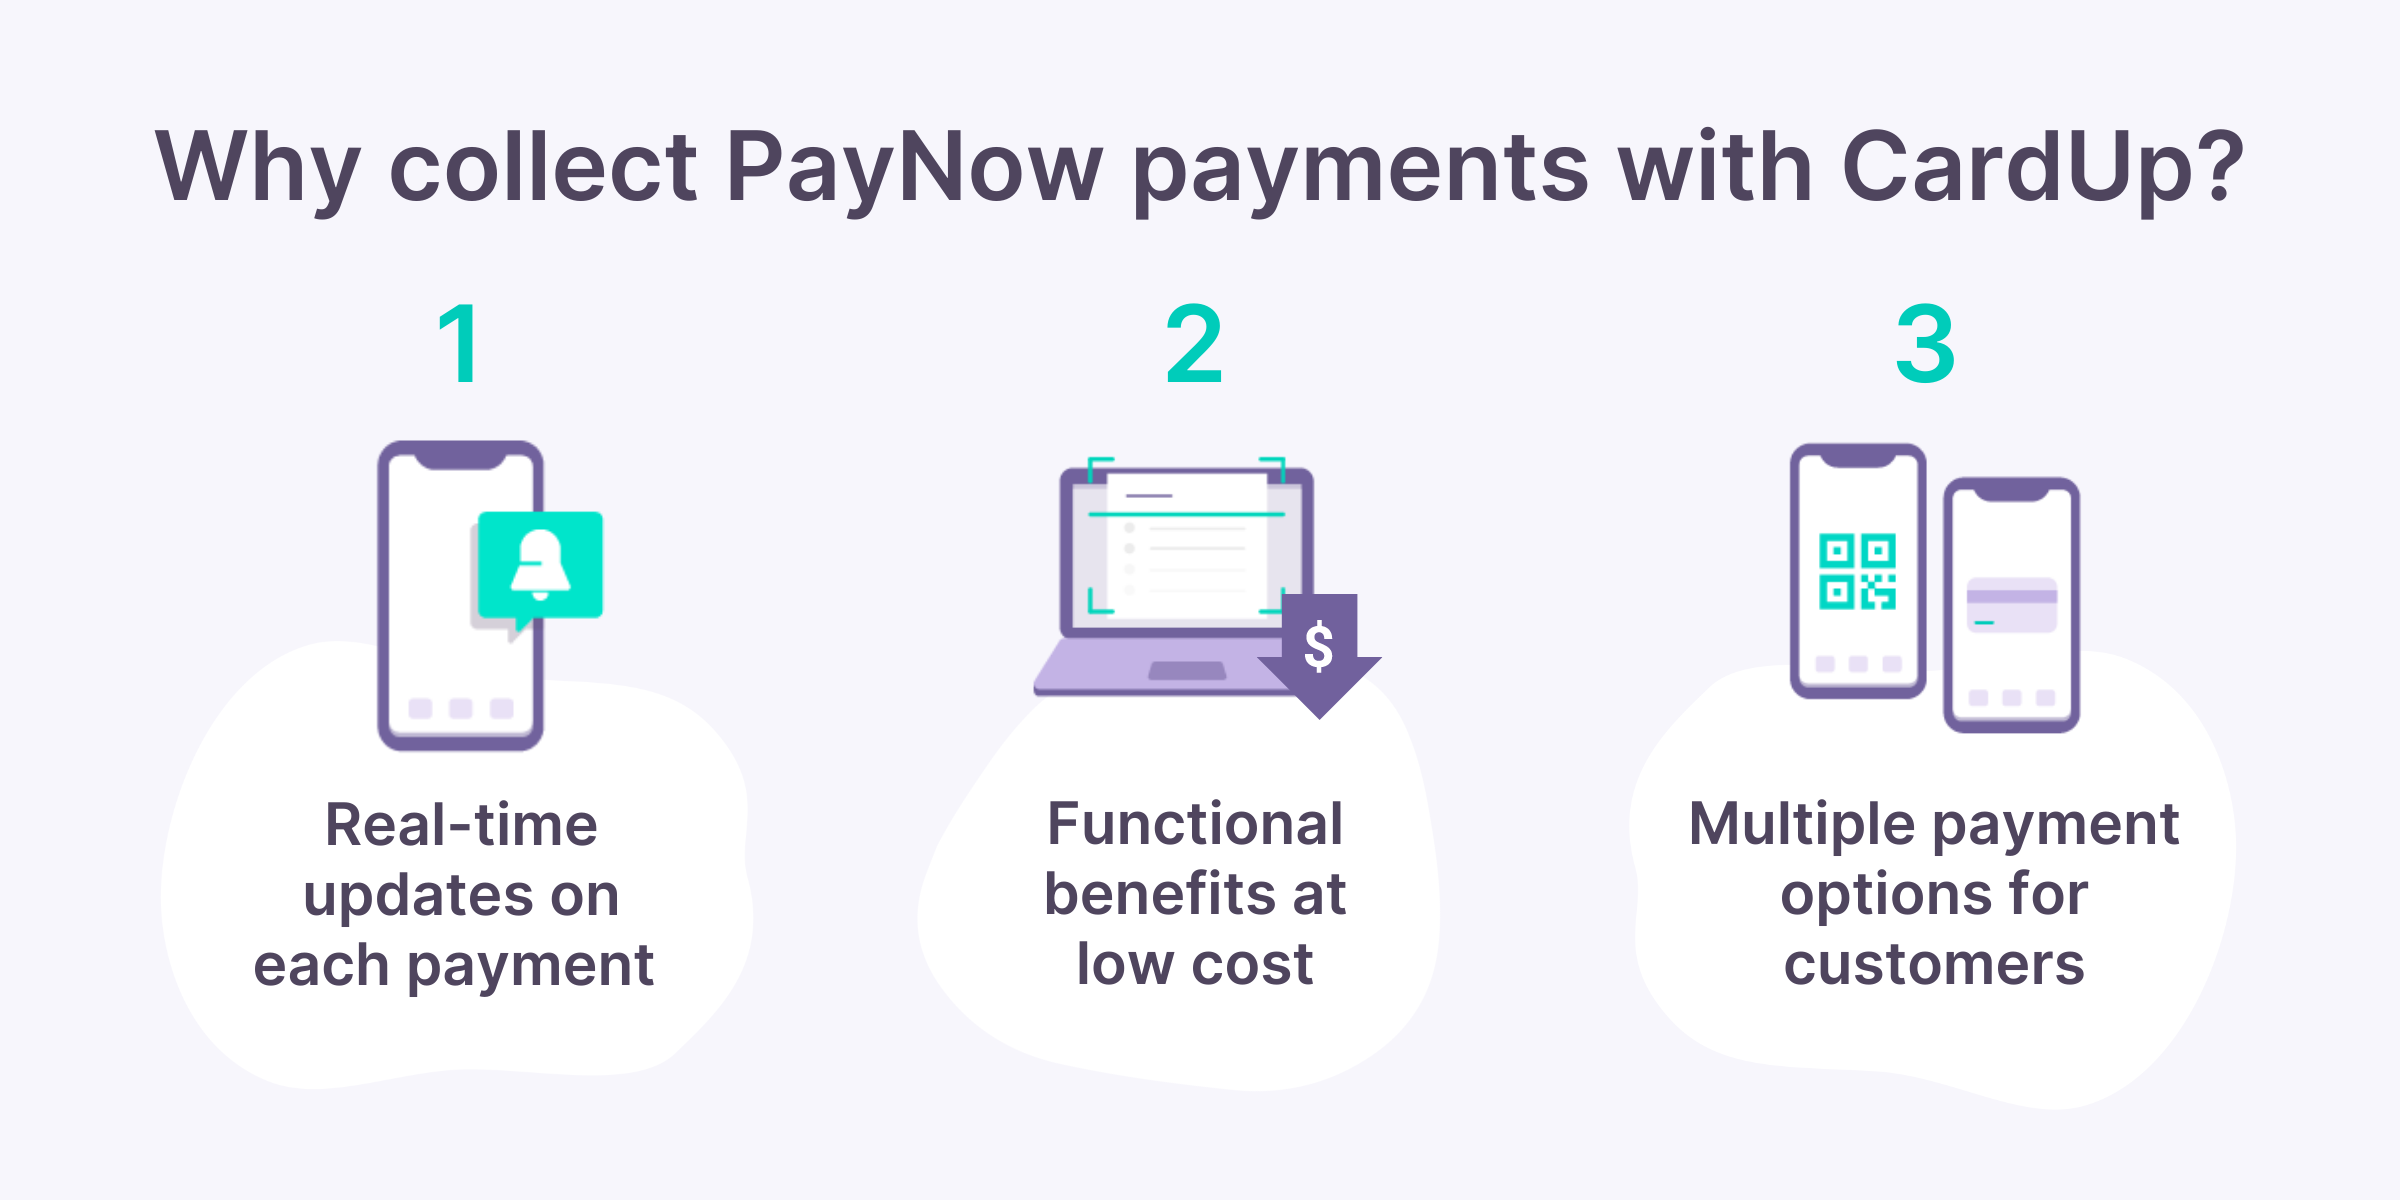 Why collect PayNow payments with CardUp?